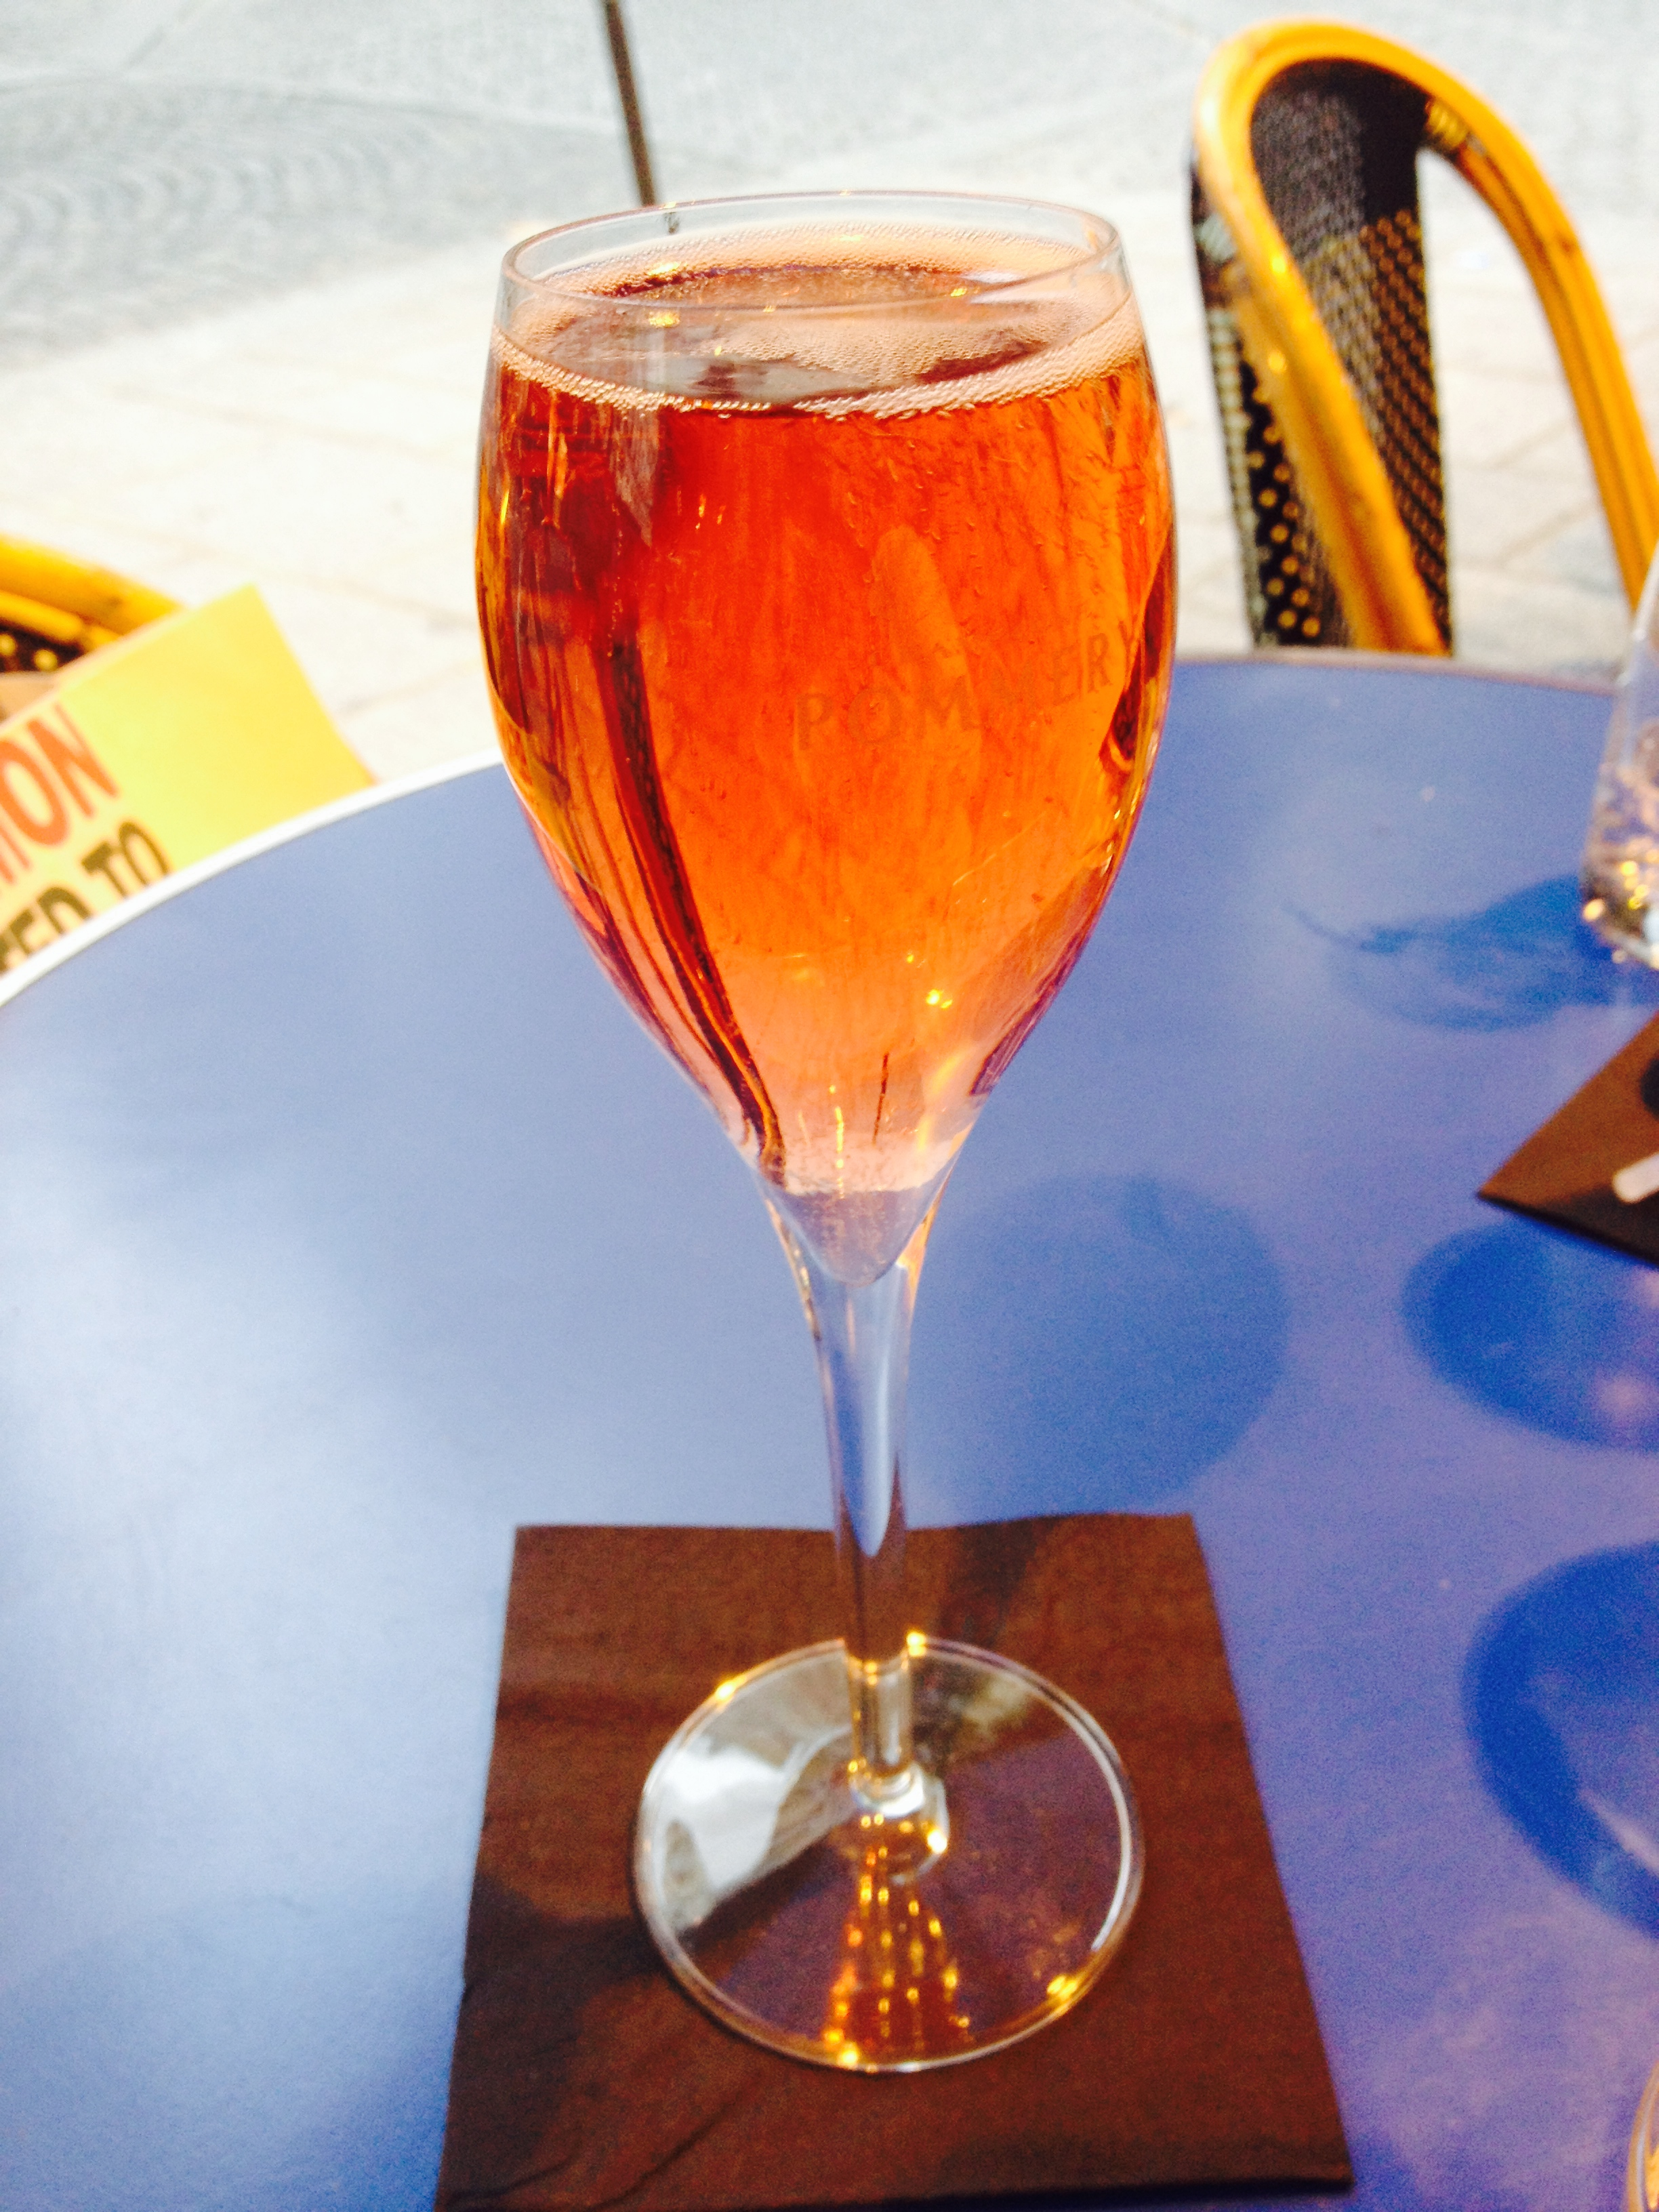 kir royale at french cafe :: by radish*rose